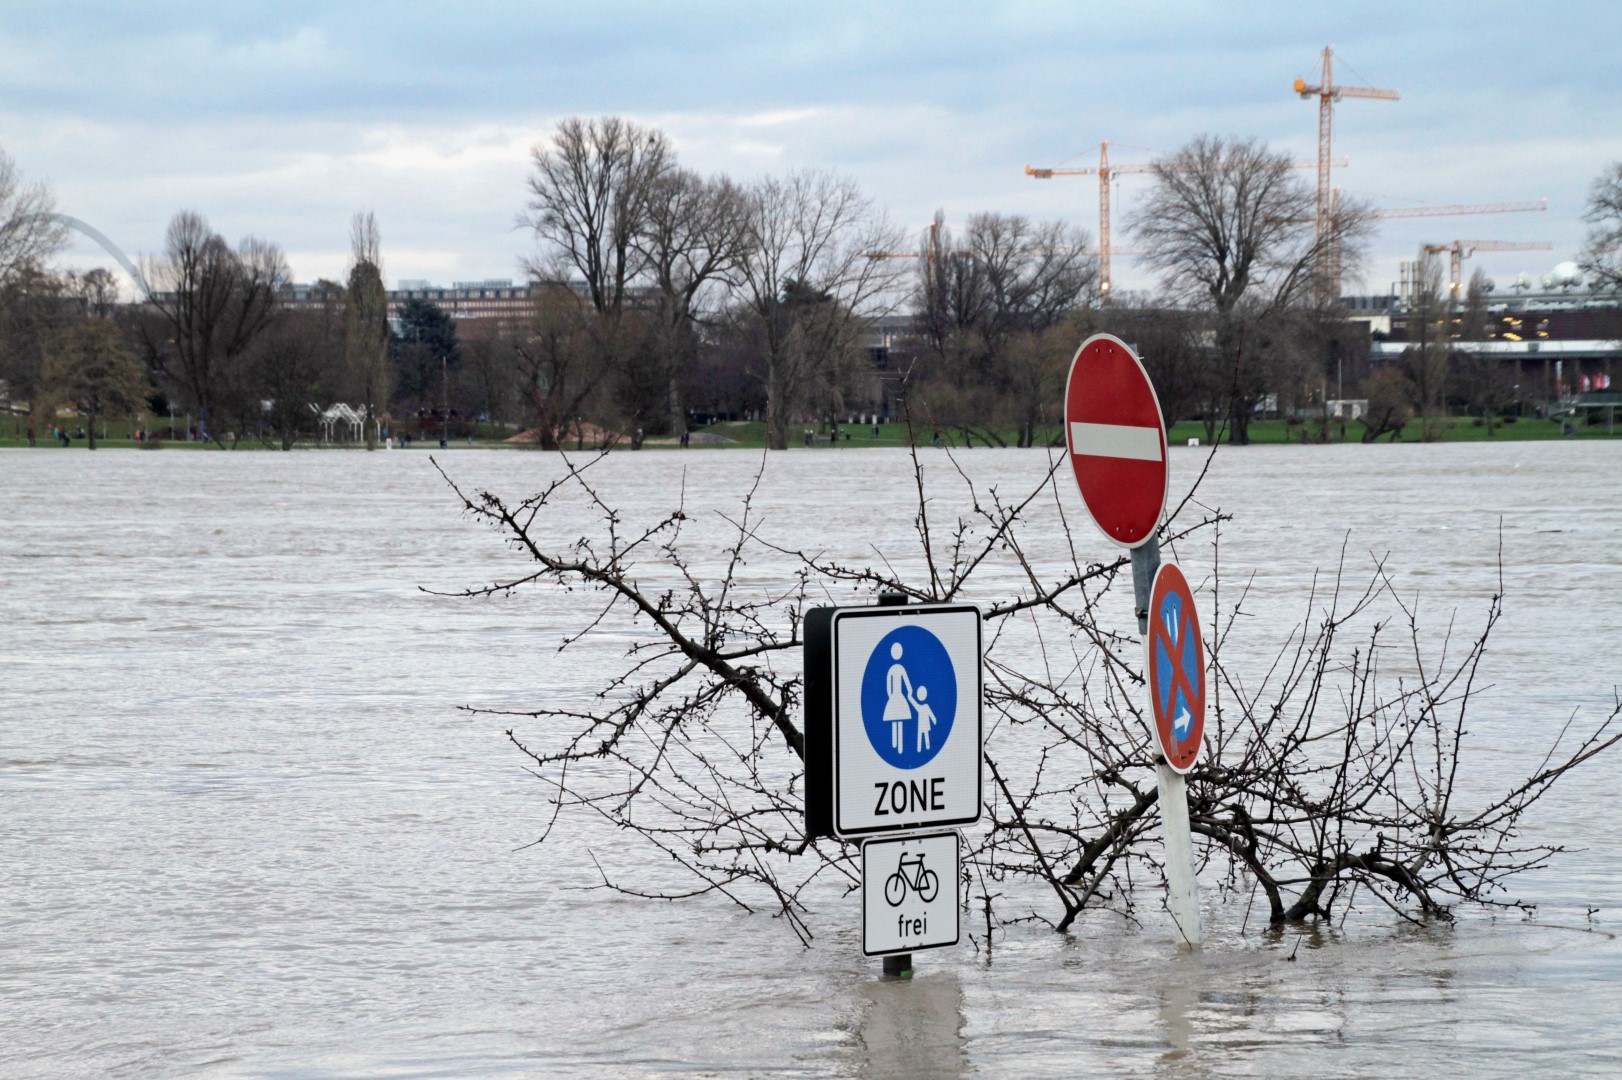 Rhein river flooding in Cologne, Germany